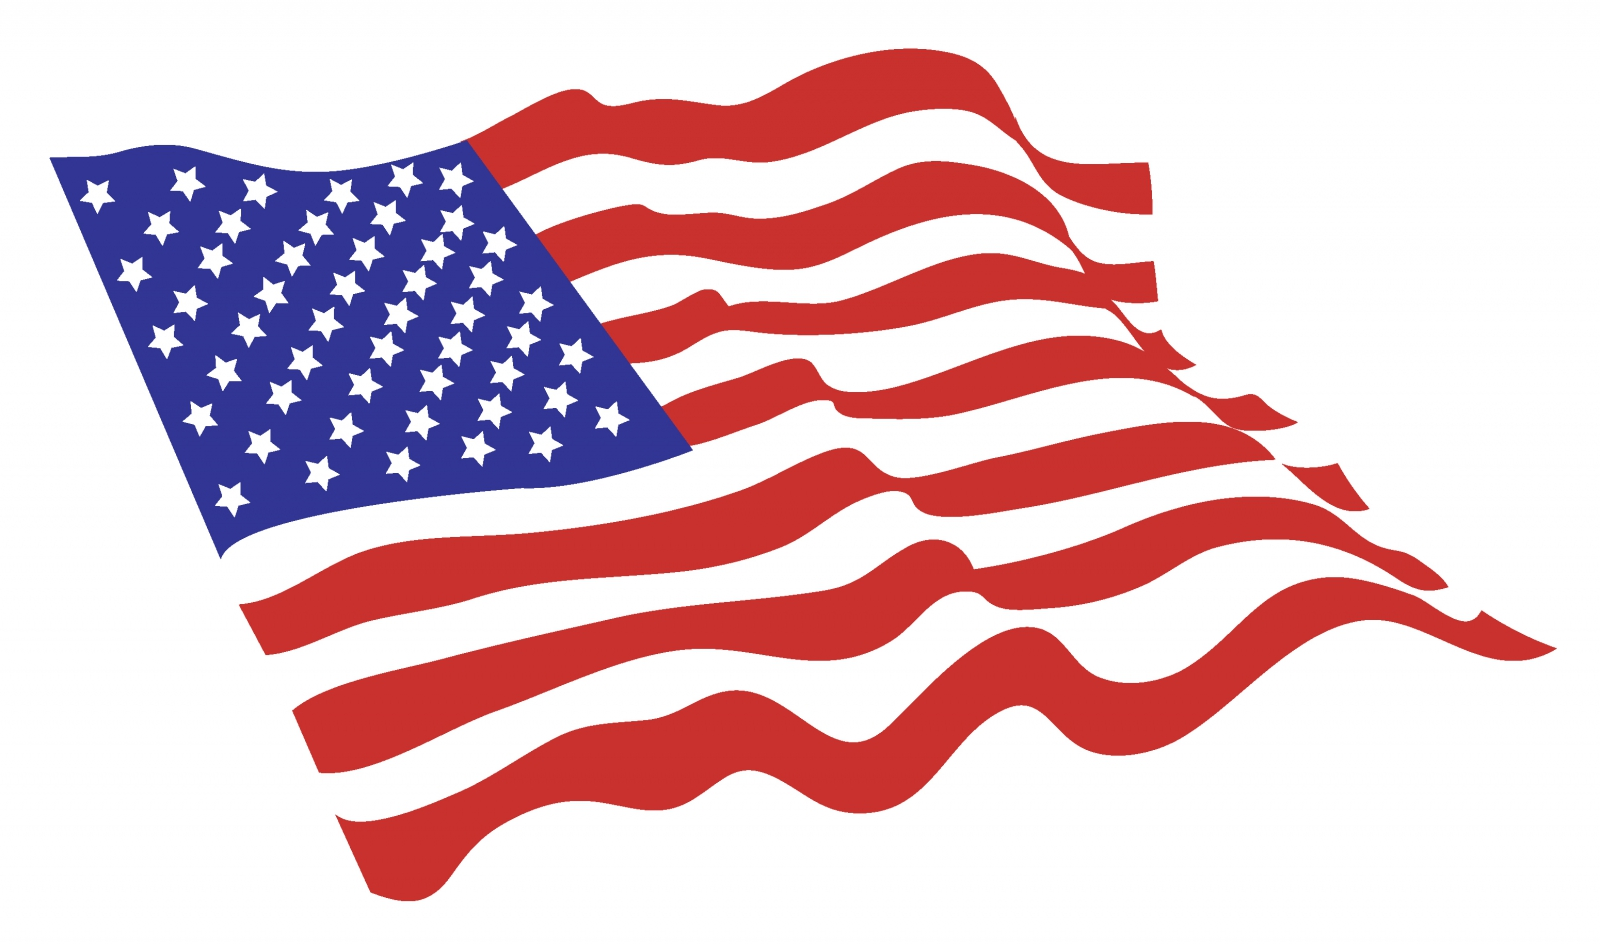 American flag clipart vector free clip free 11 American Flag Vector Free Download Images - American Flag Vector ... clip free